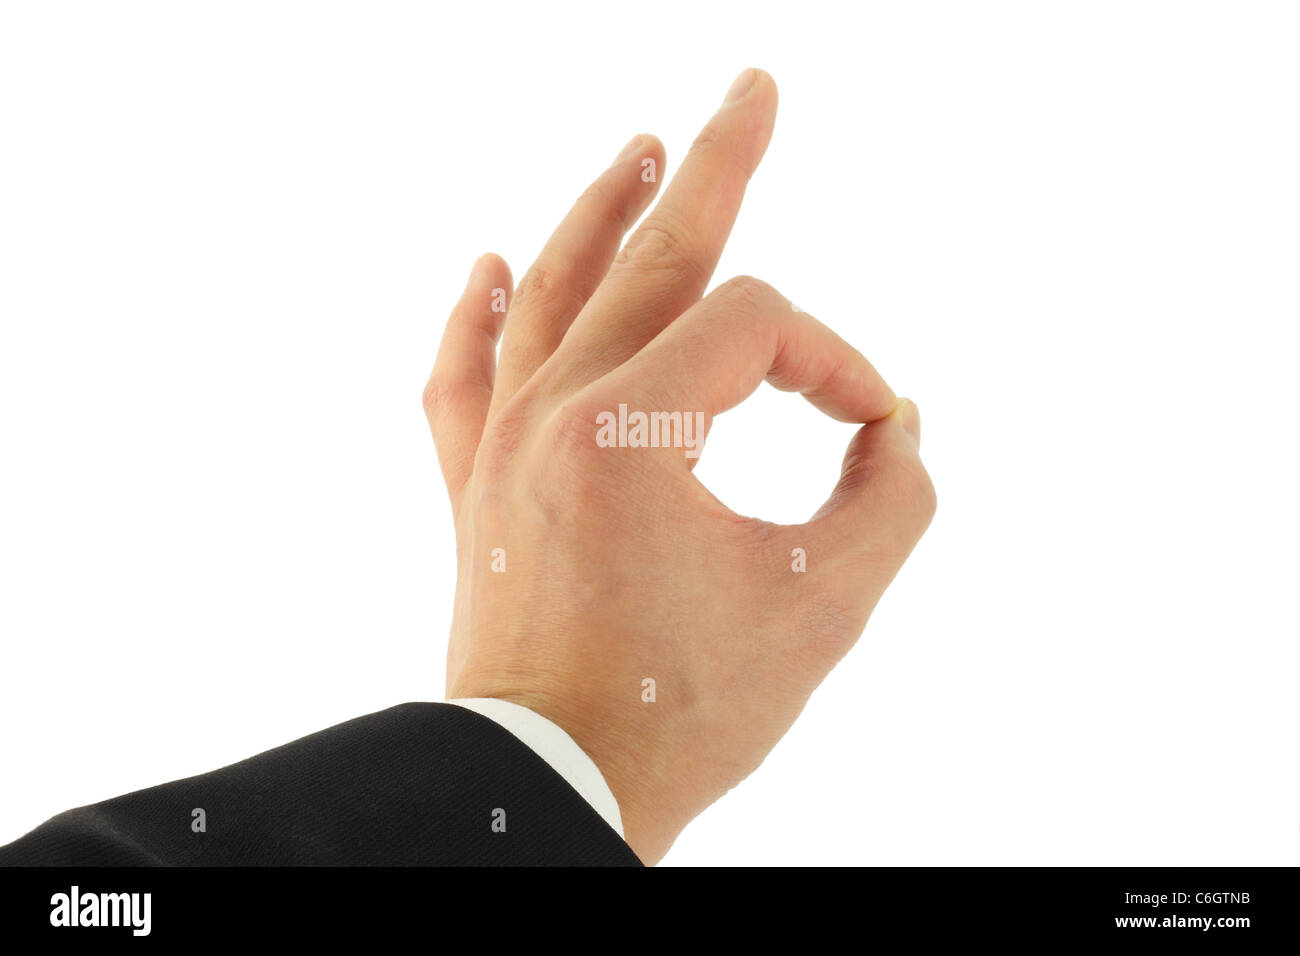 Business man's hand signing okay - Stock Image